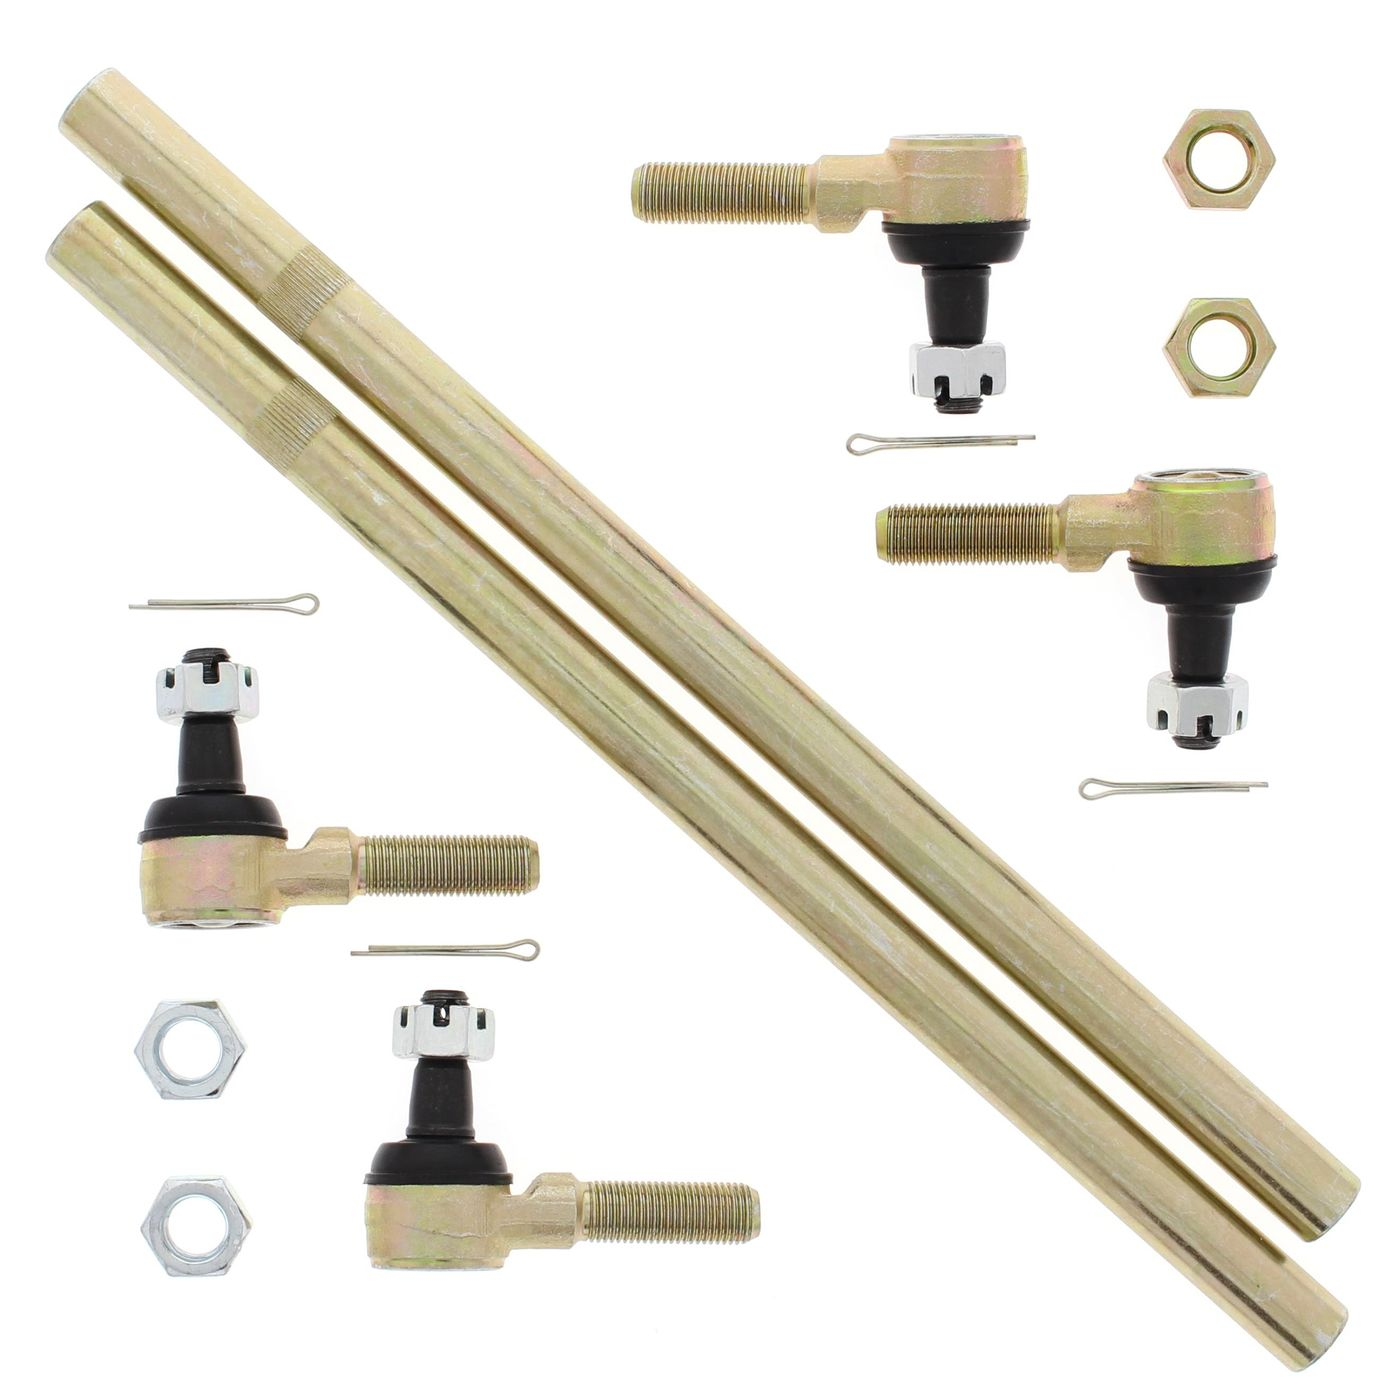 Wrp Tie Rod Kits - WRP521005 image